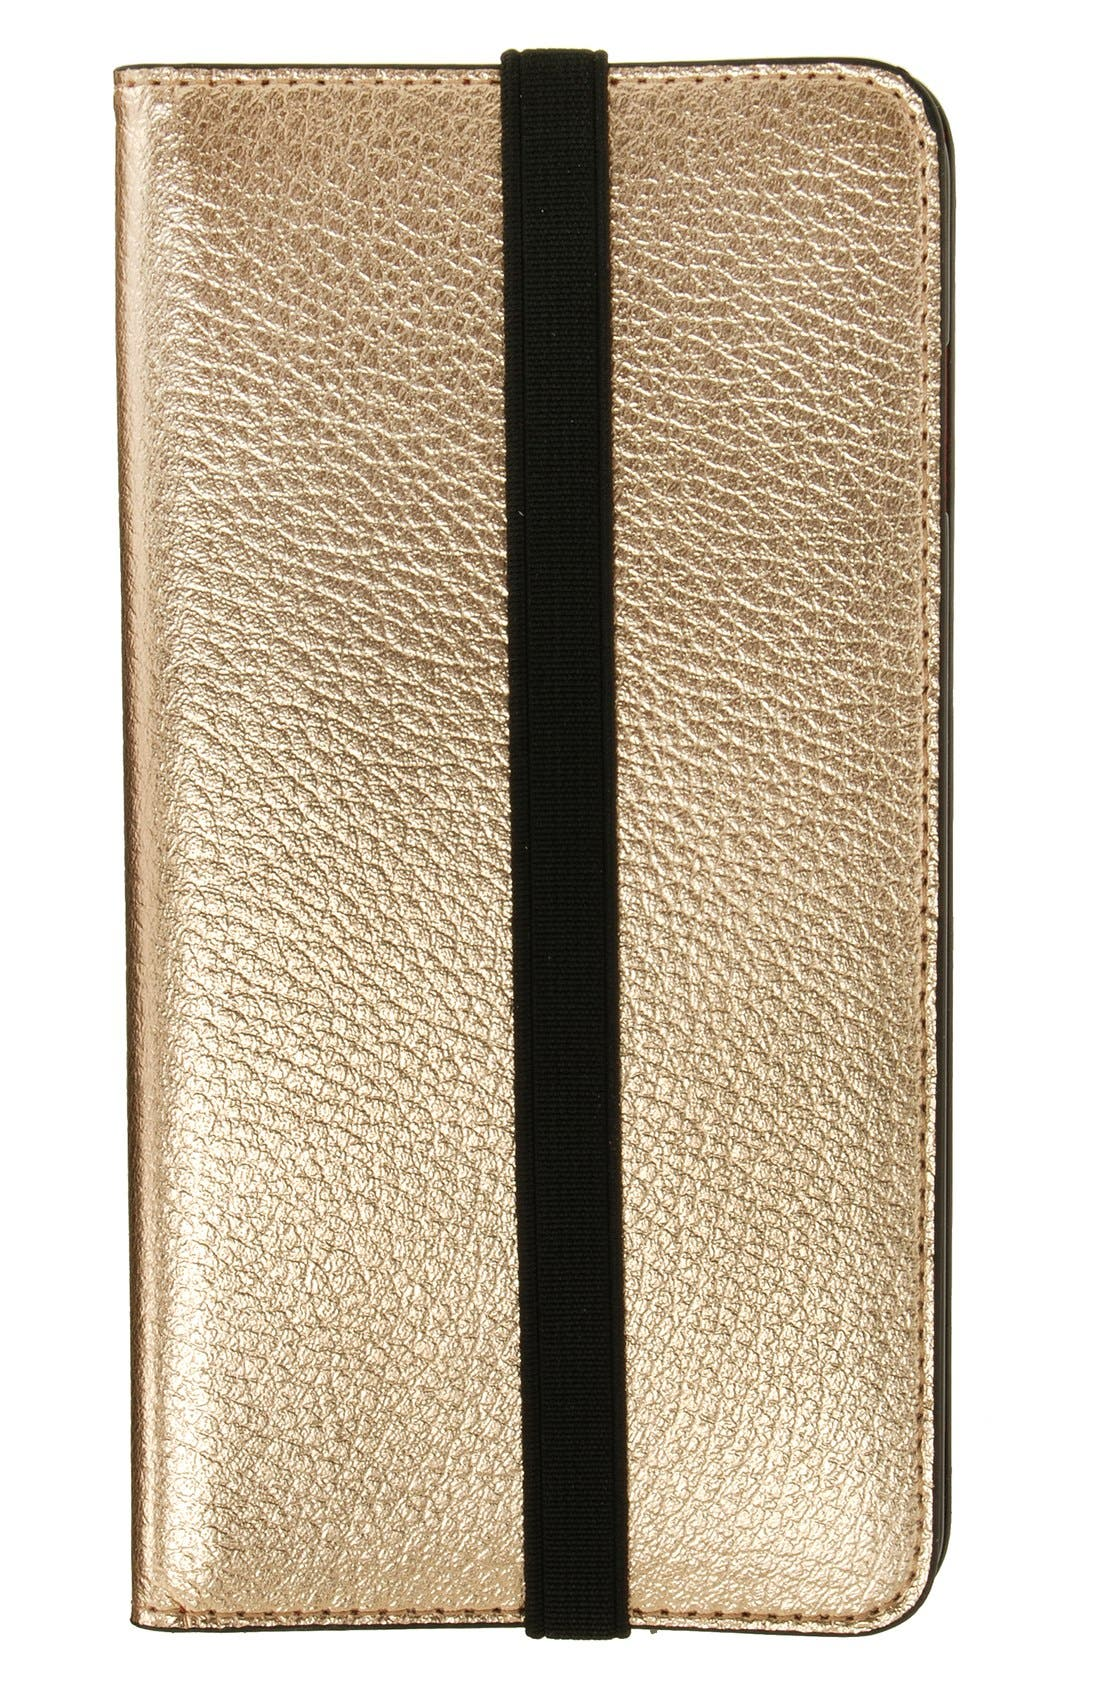 Main Image - Mobileluxe iPhone 6 Plus/6s Plus Metallic Leather Wallet Case